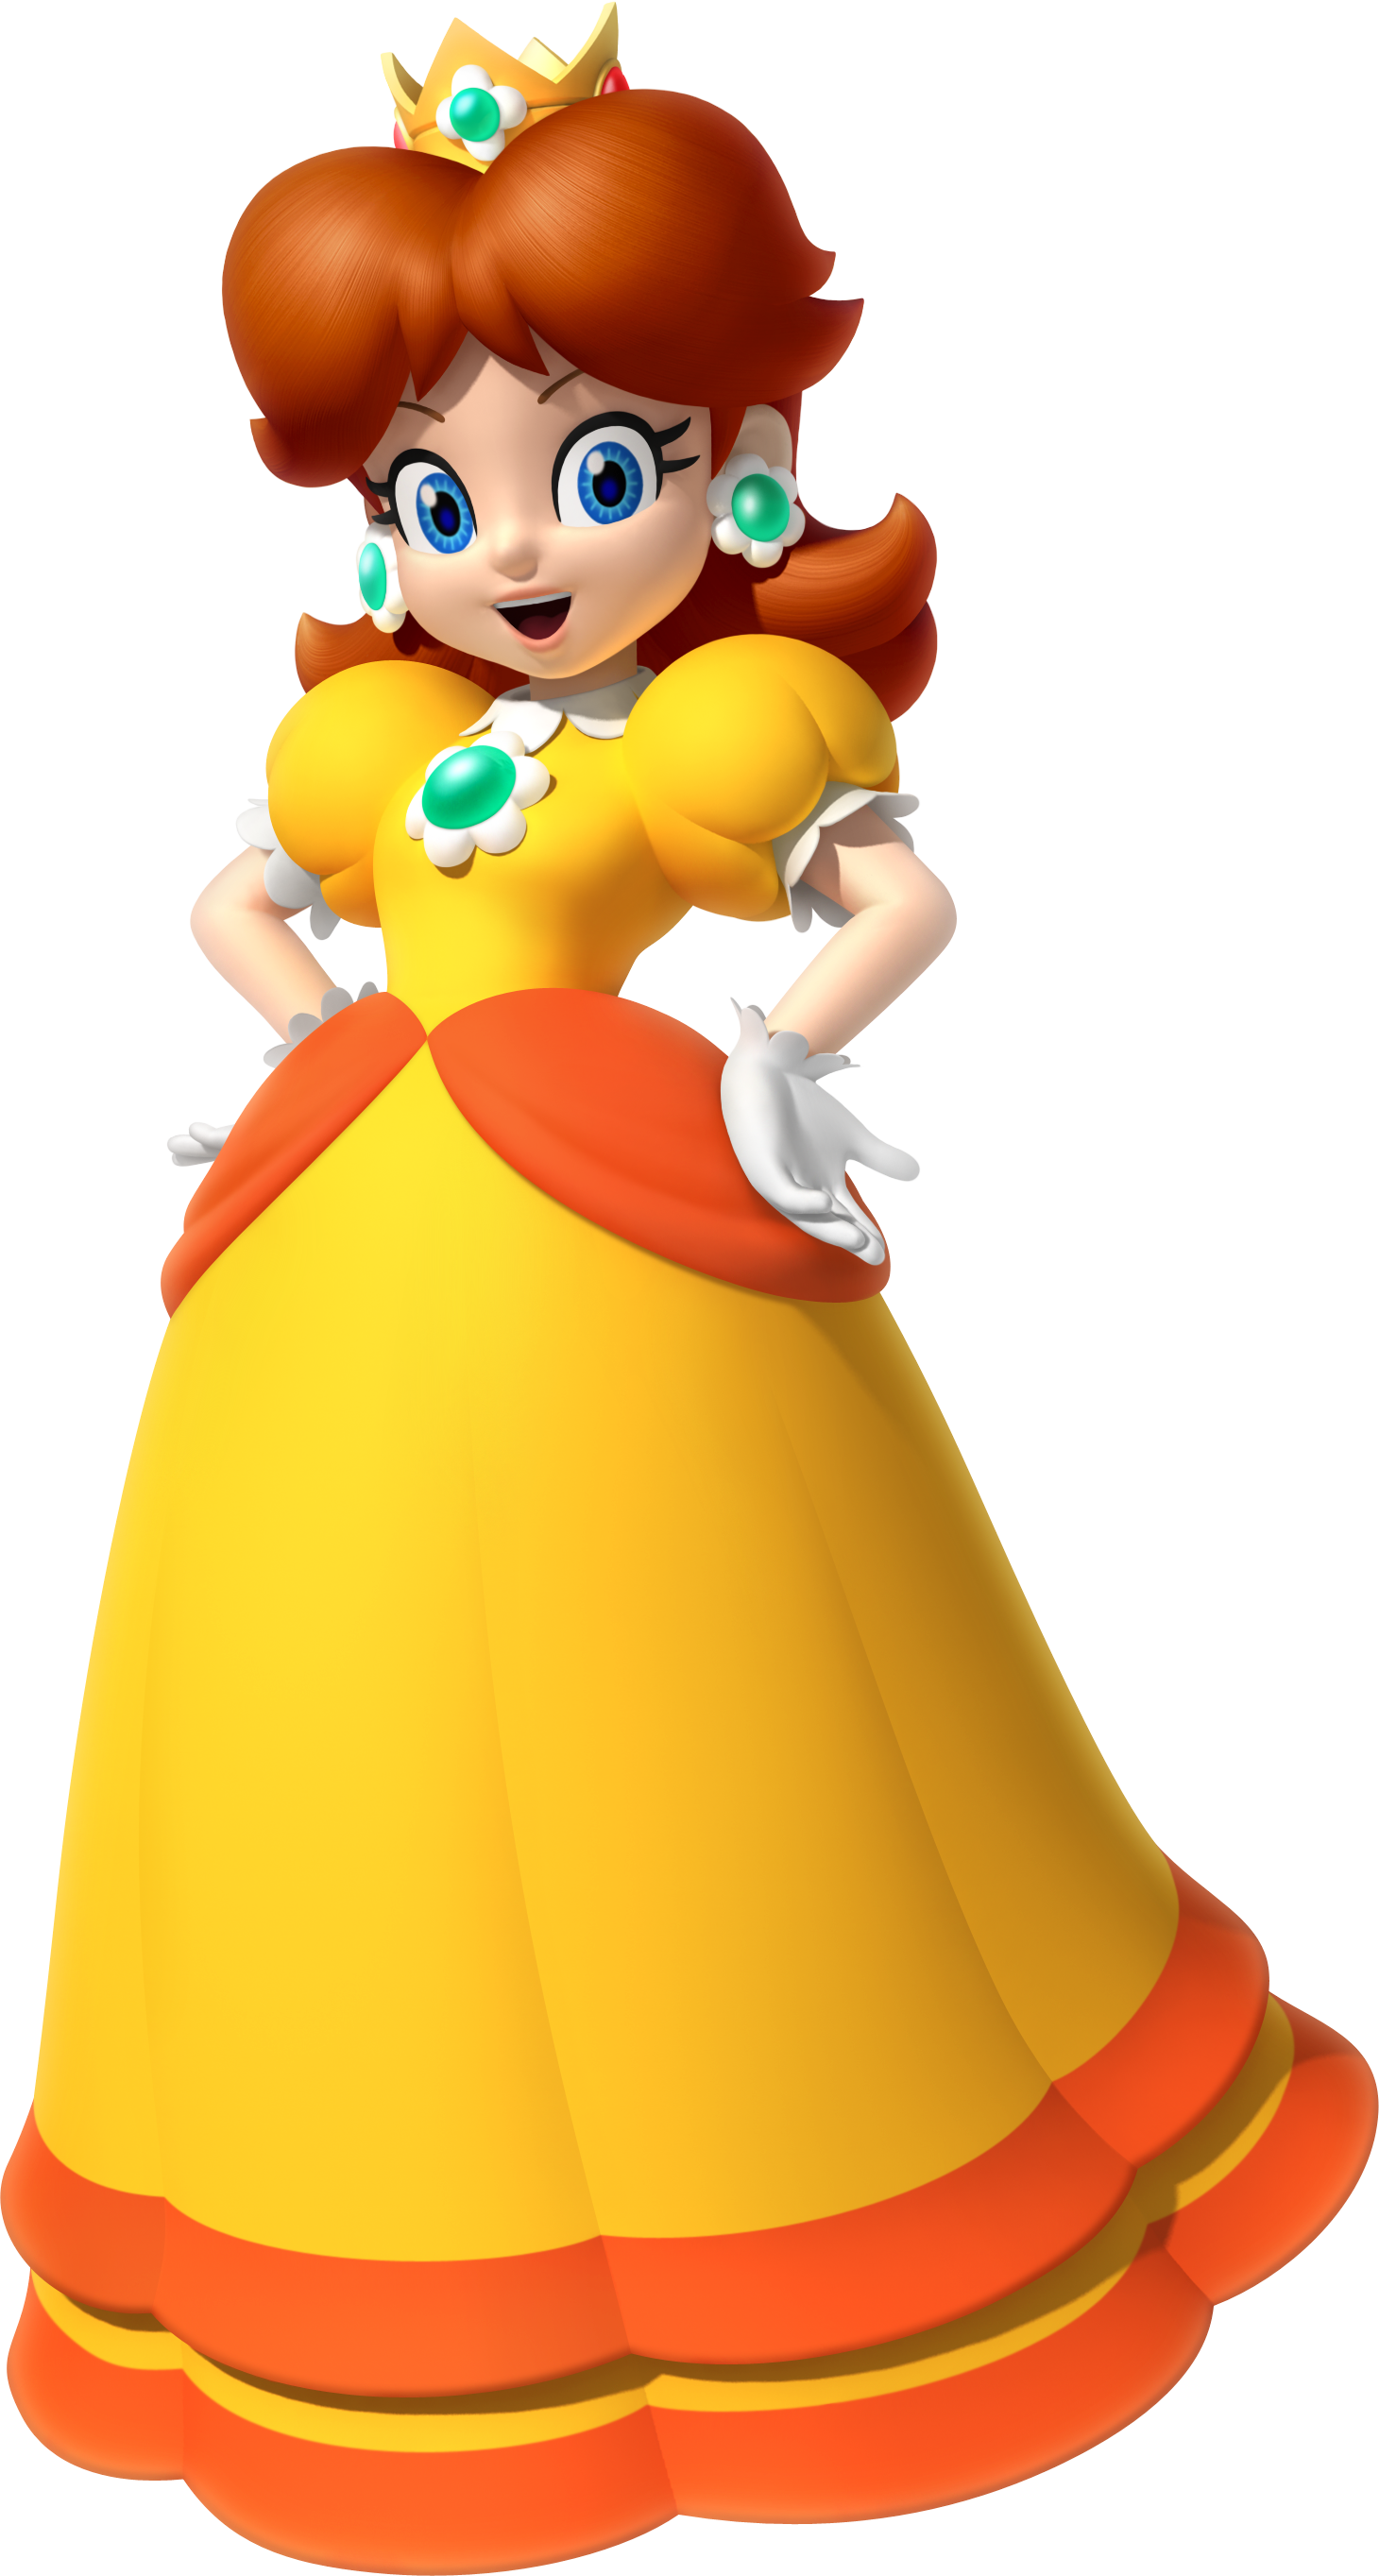 File:Daisy MP10.png